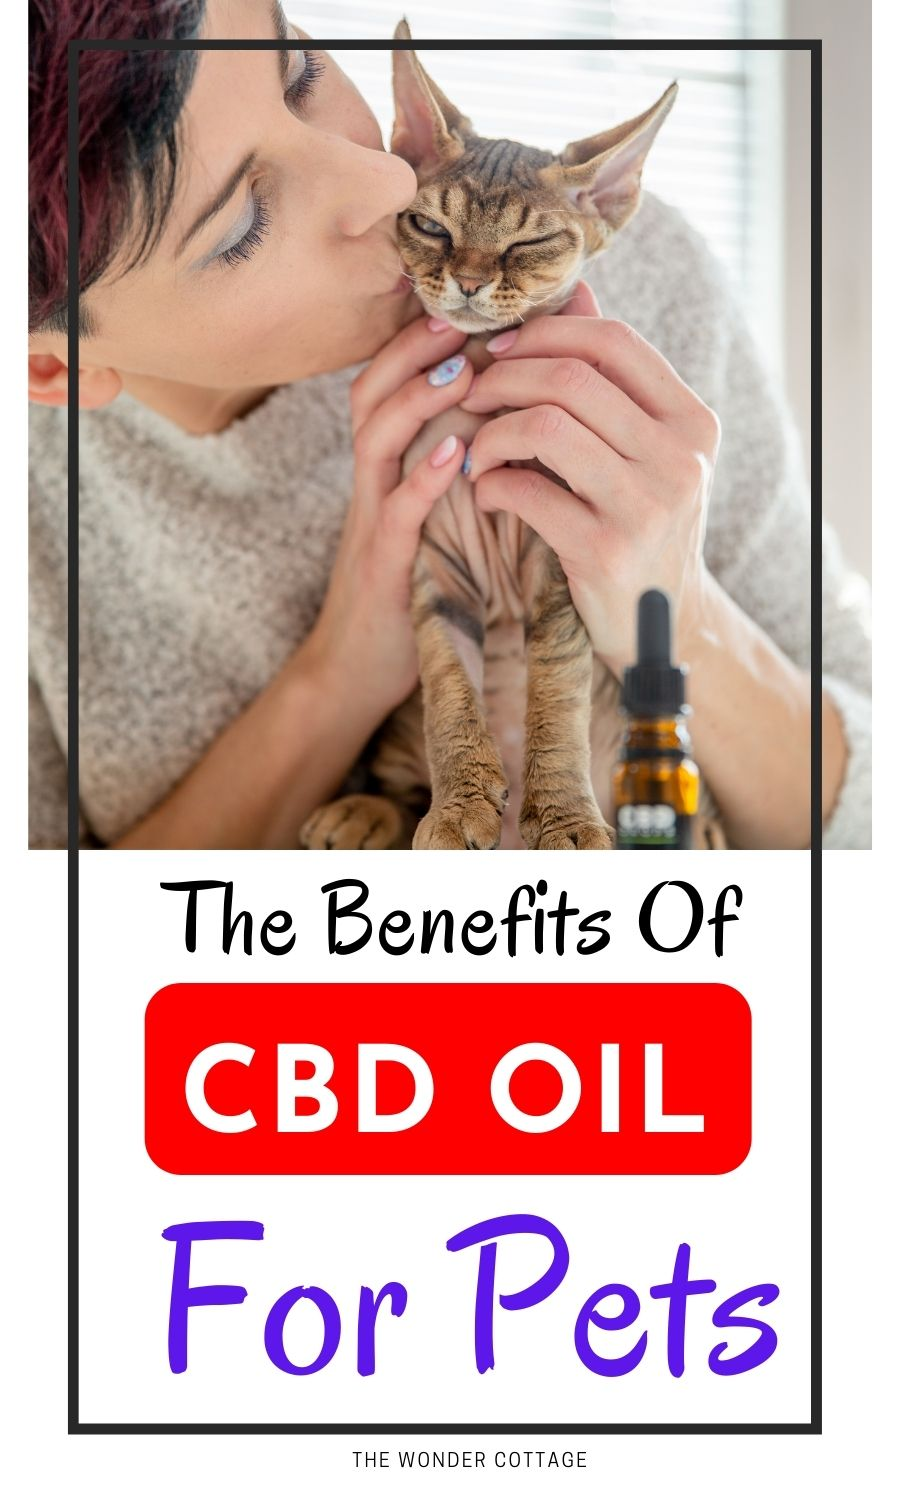 The benefits of CBD oi for pets